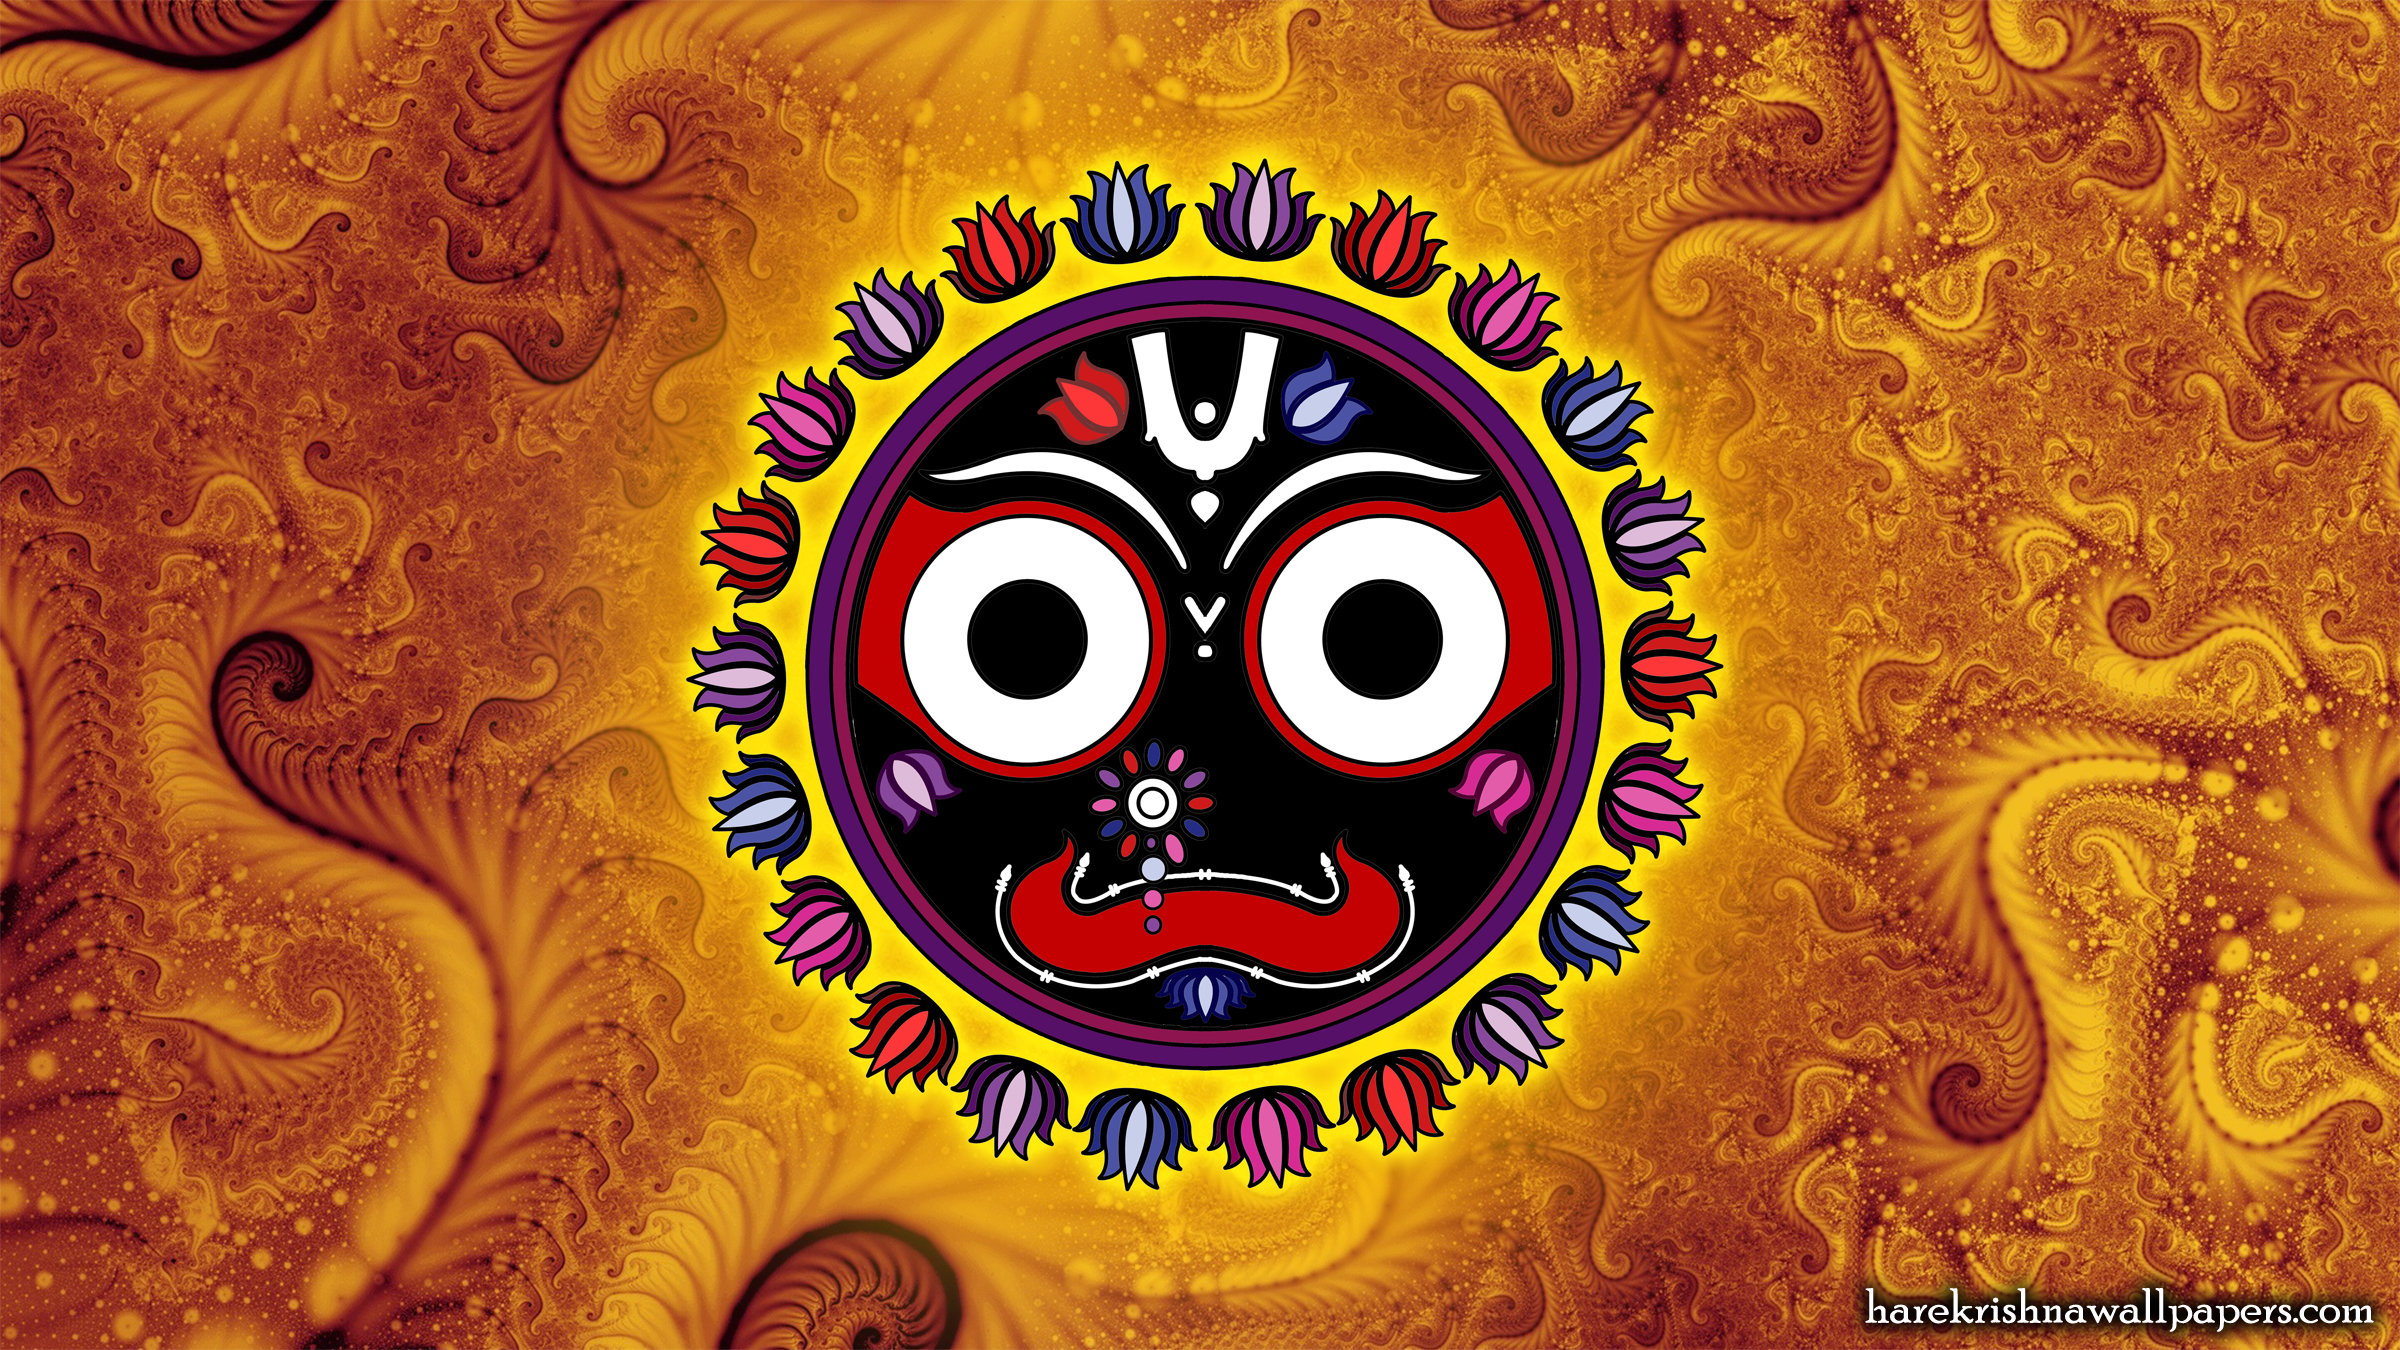 Jai Jagannath Wallpaper (032) Size 2400x1350 Download